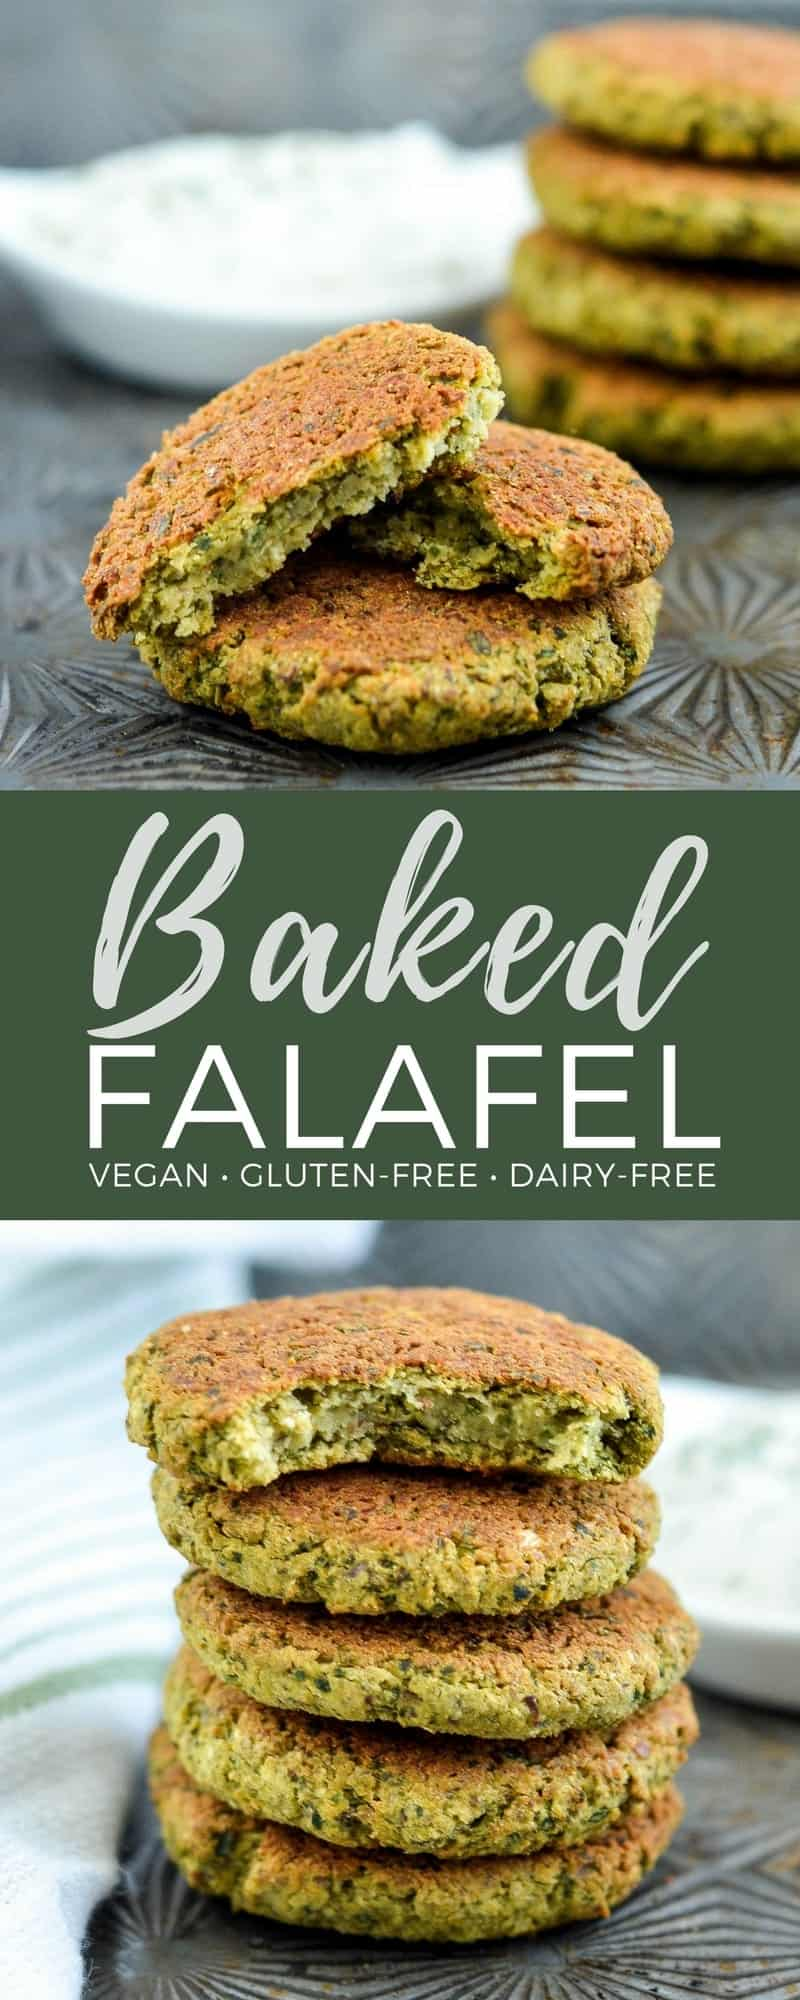 Healthy Gluten-free Vegan Baked Falafel! The perfect quick & easy meatless dinner recipe! They're gluten-free, dairy-free, vegan & freezer-friendly! #falafel #baked #healthy #recipe #vegan #glutenfree #dairyfree #freezerfriendly #meatless #maindish